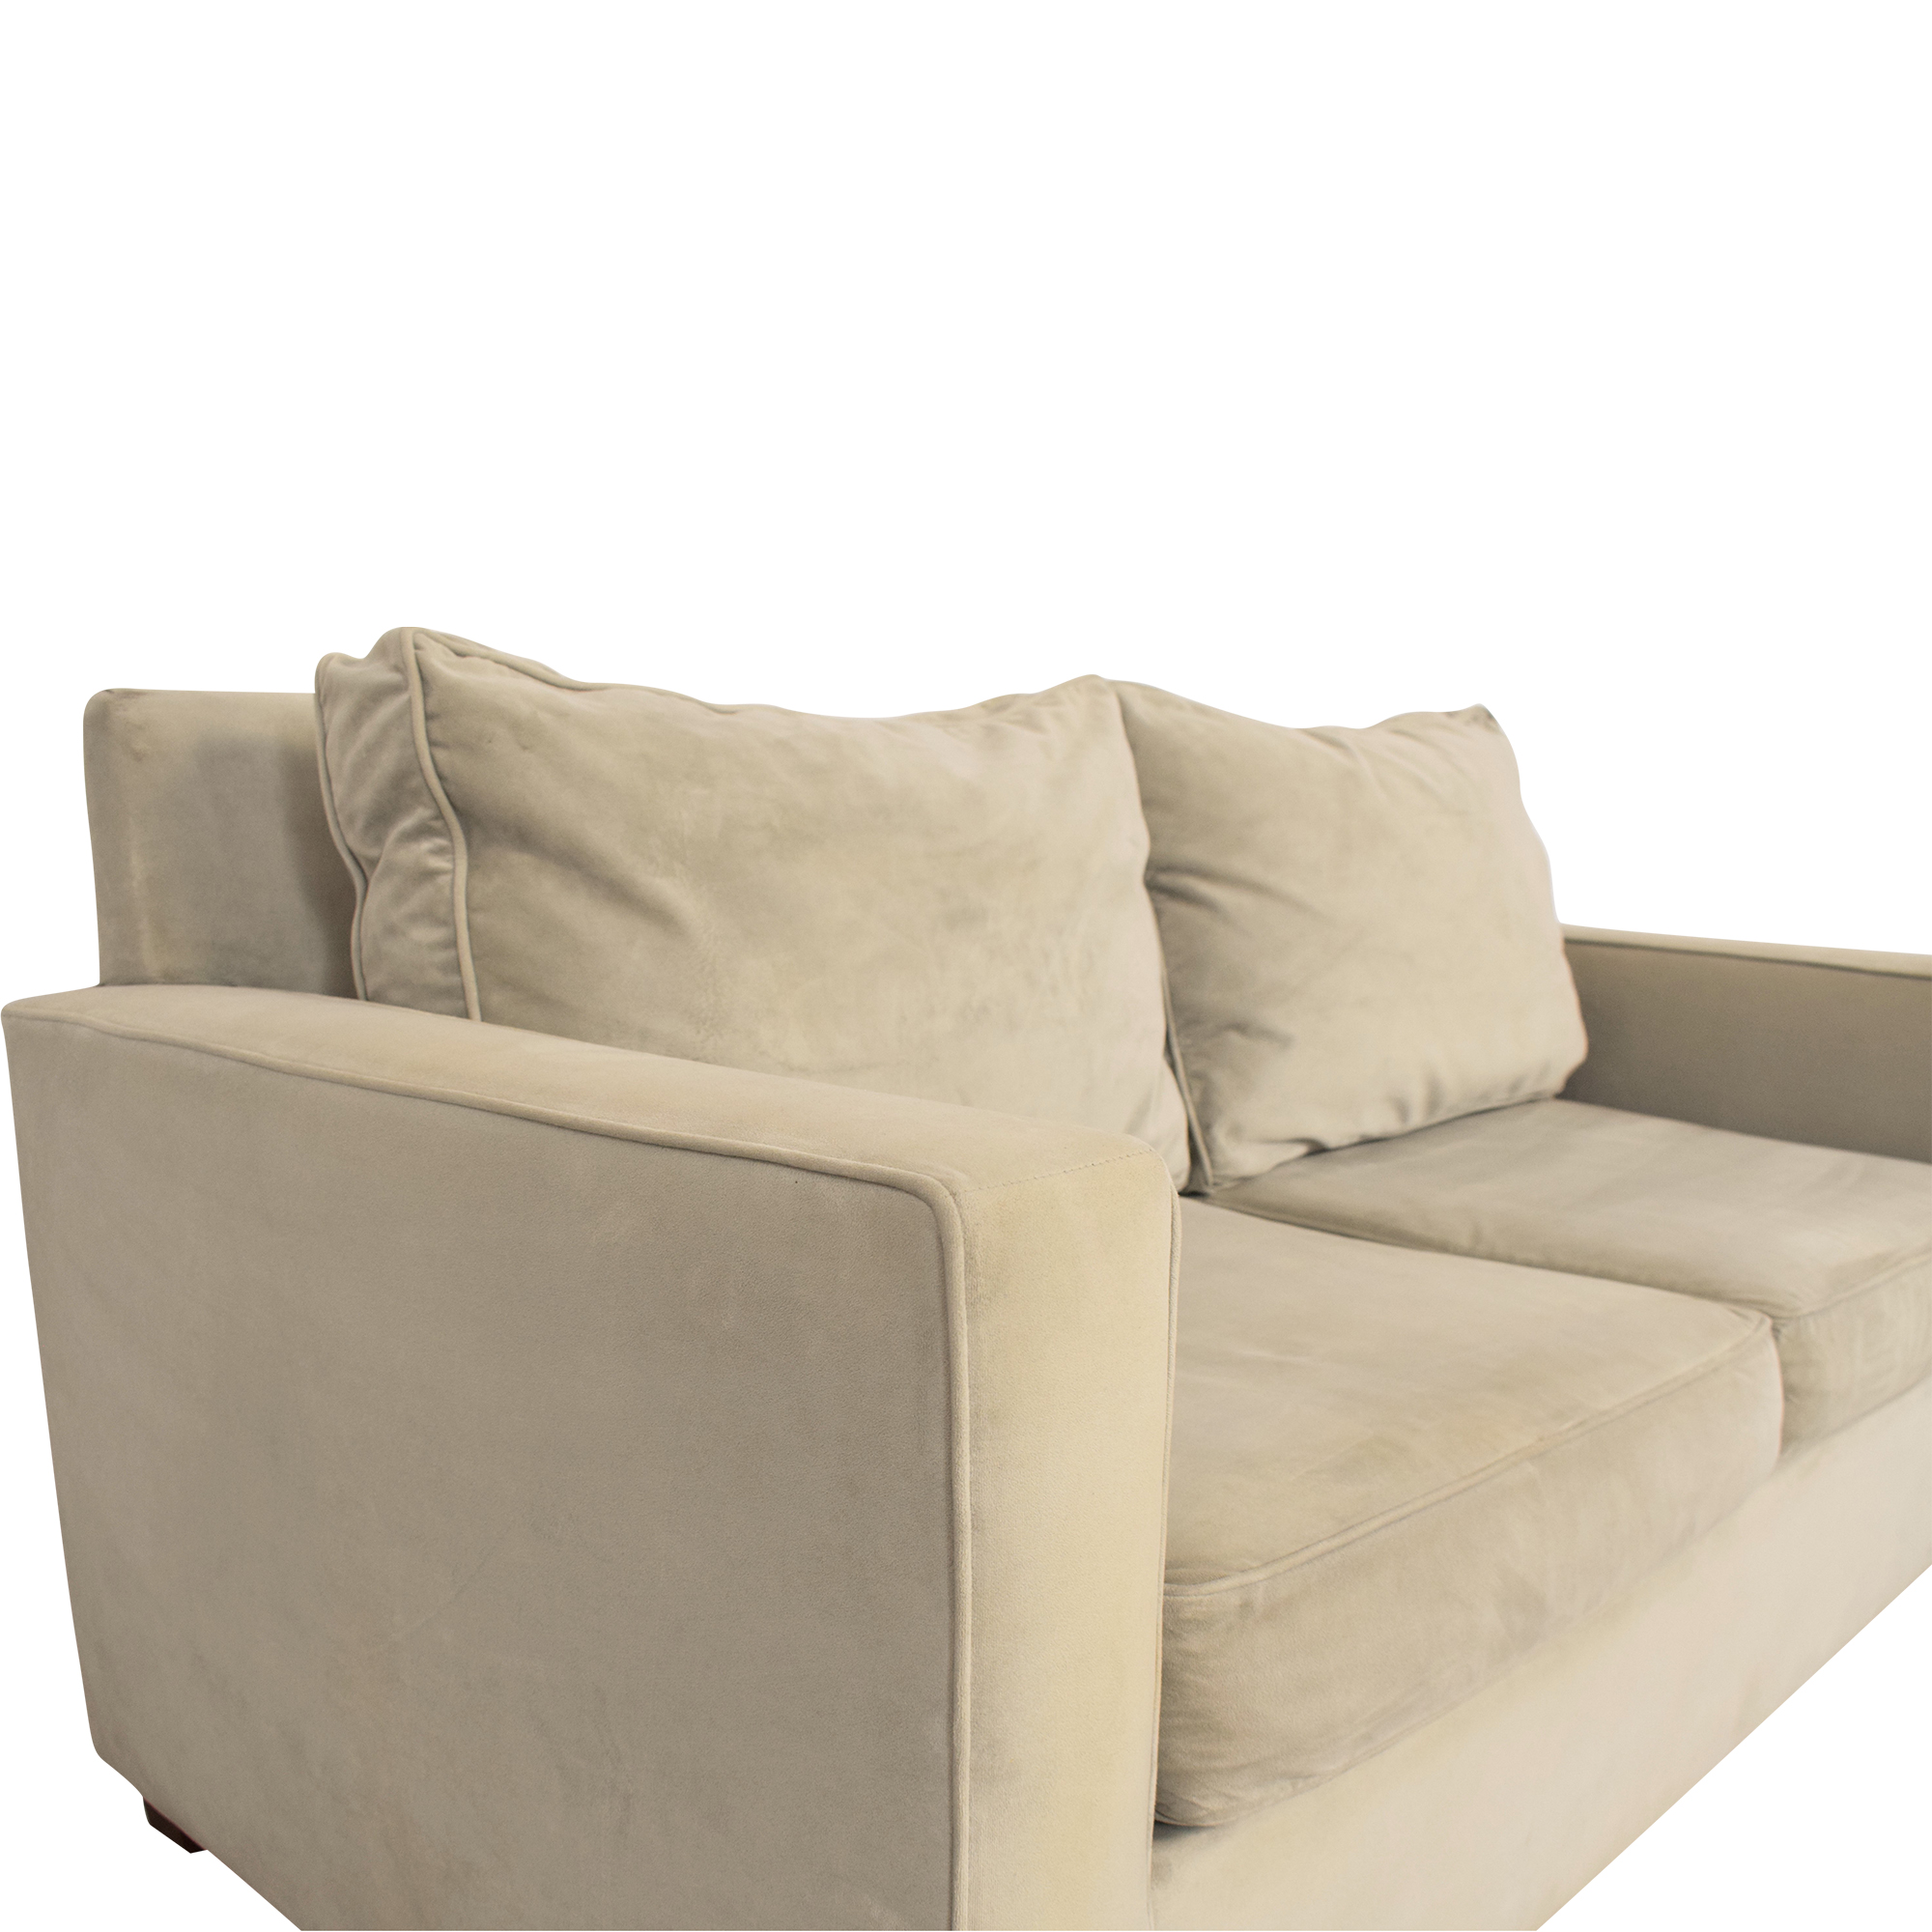 buy West Elm West Elm Loveseat online